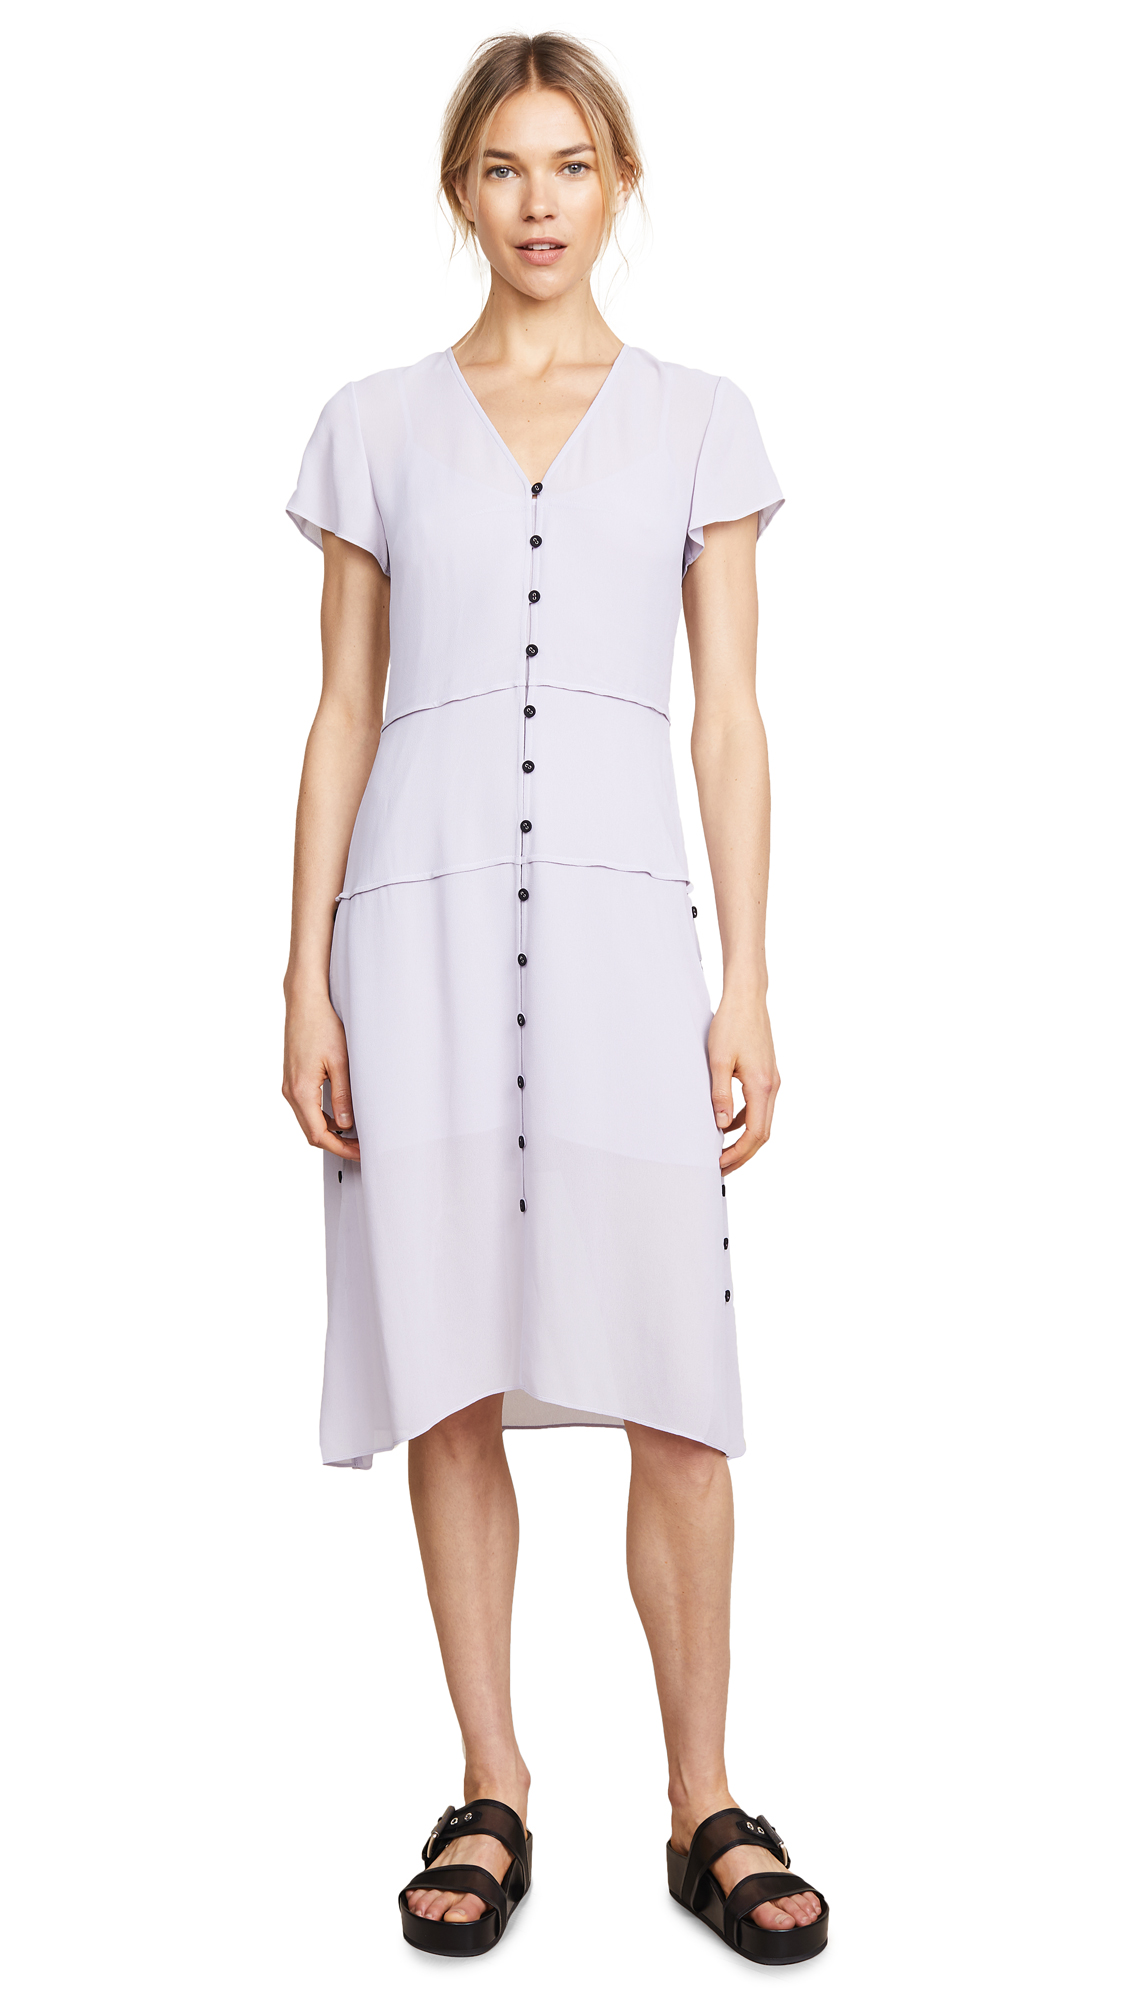 Rag & Bone McCormick Dress